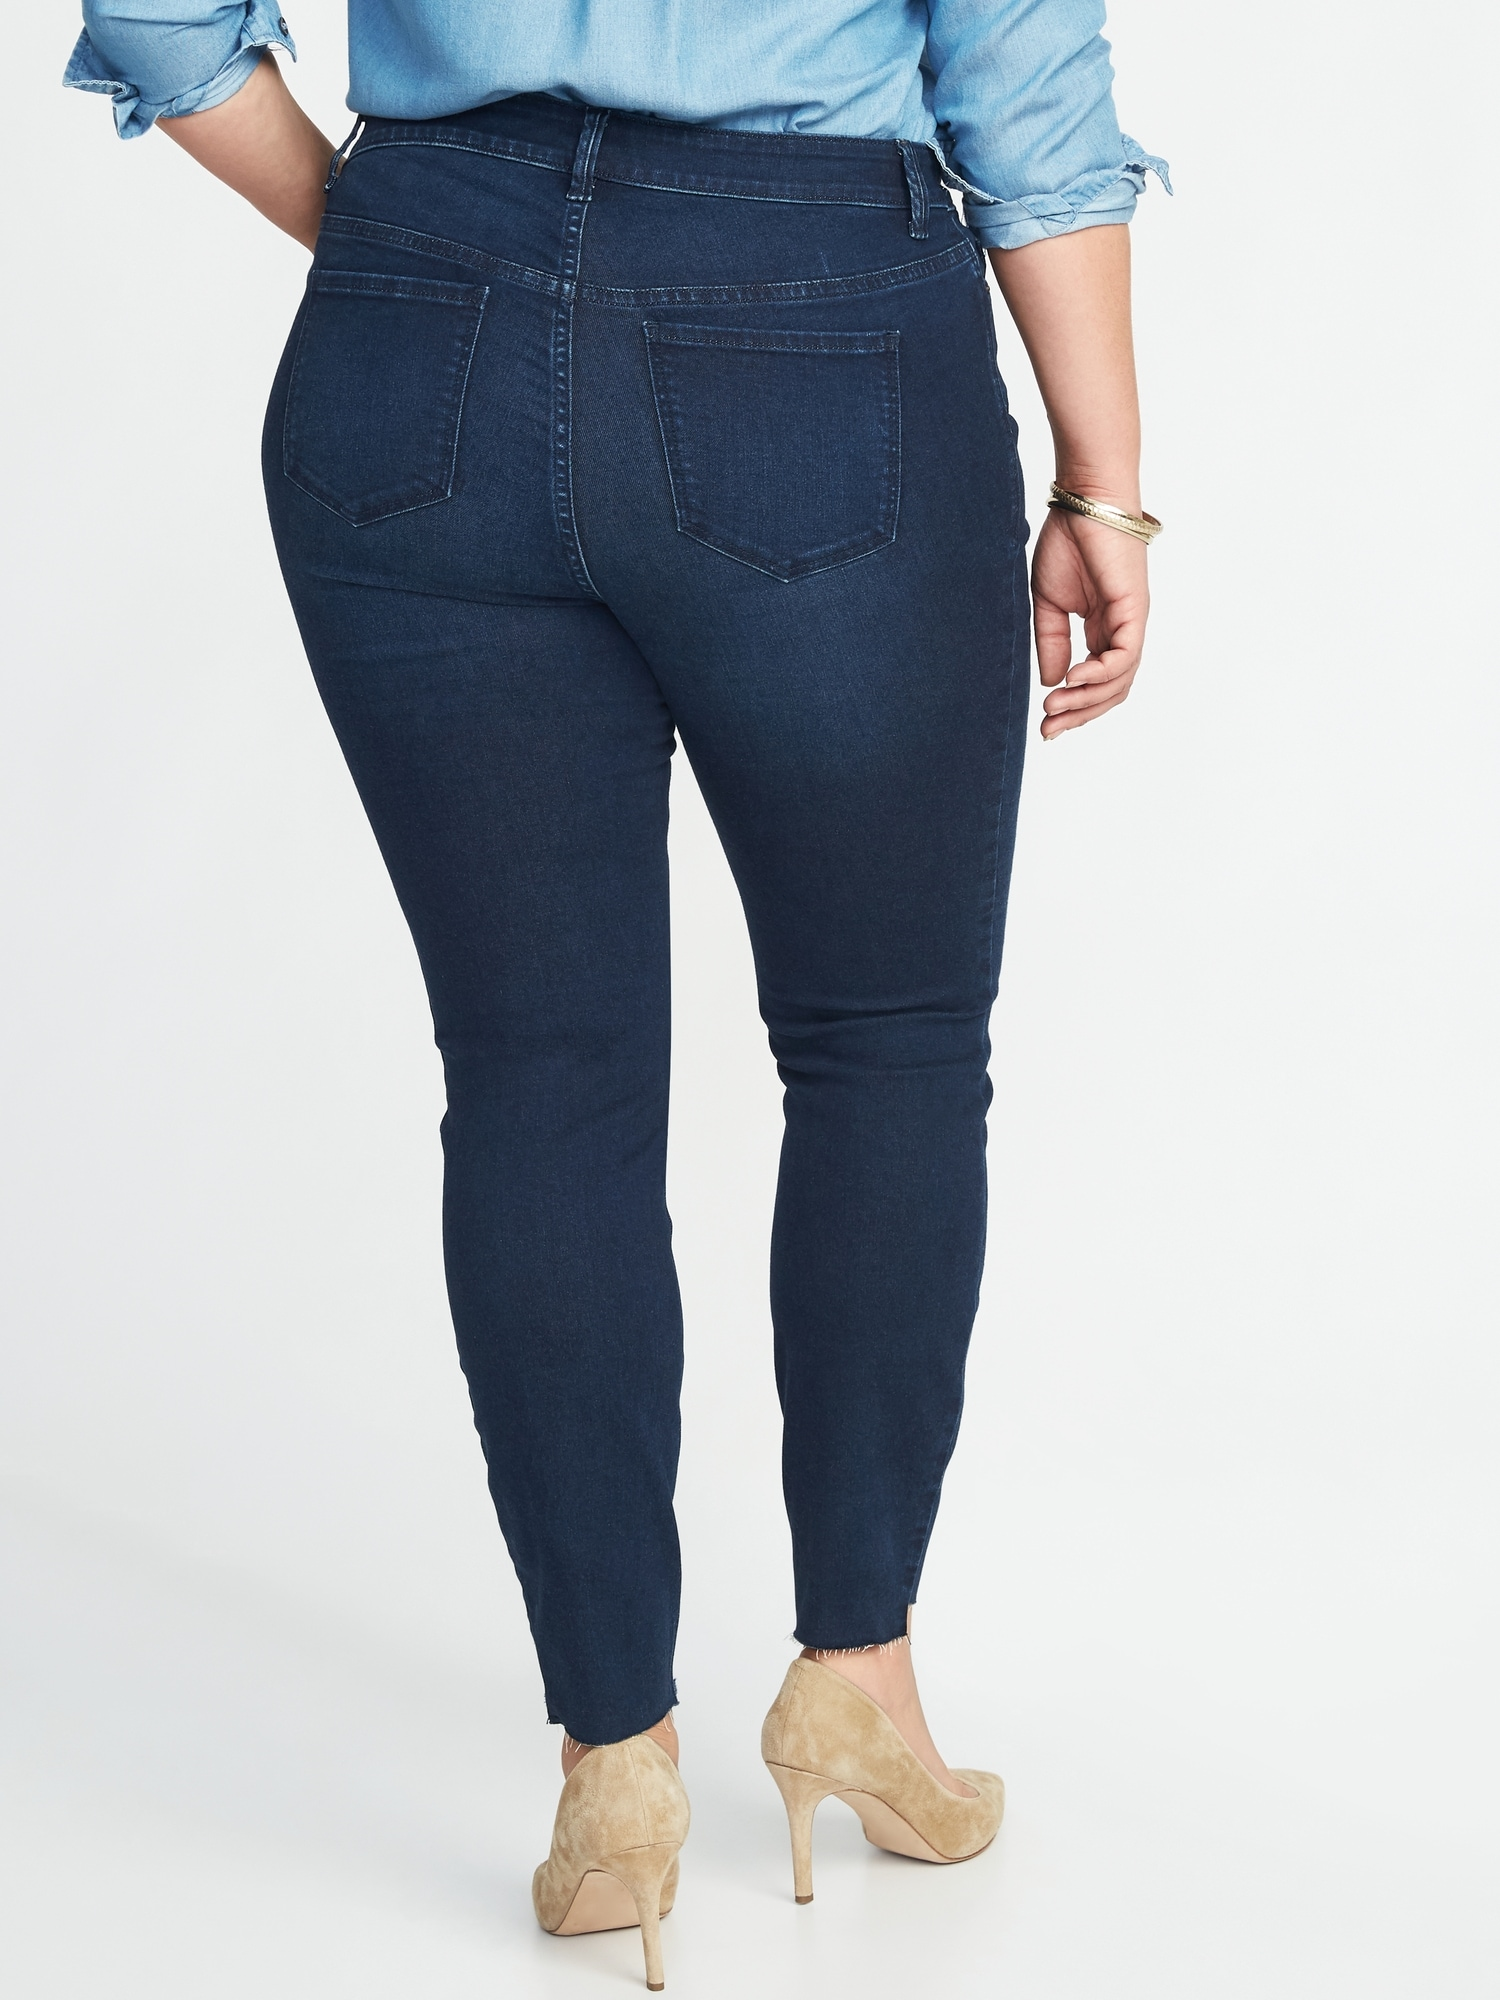 845cac40ed42 High-Rise Secret-Slim Pockets Plus-Size Step-Hem Rockstar Jeans ...